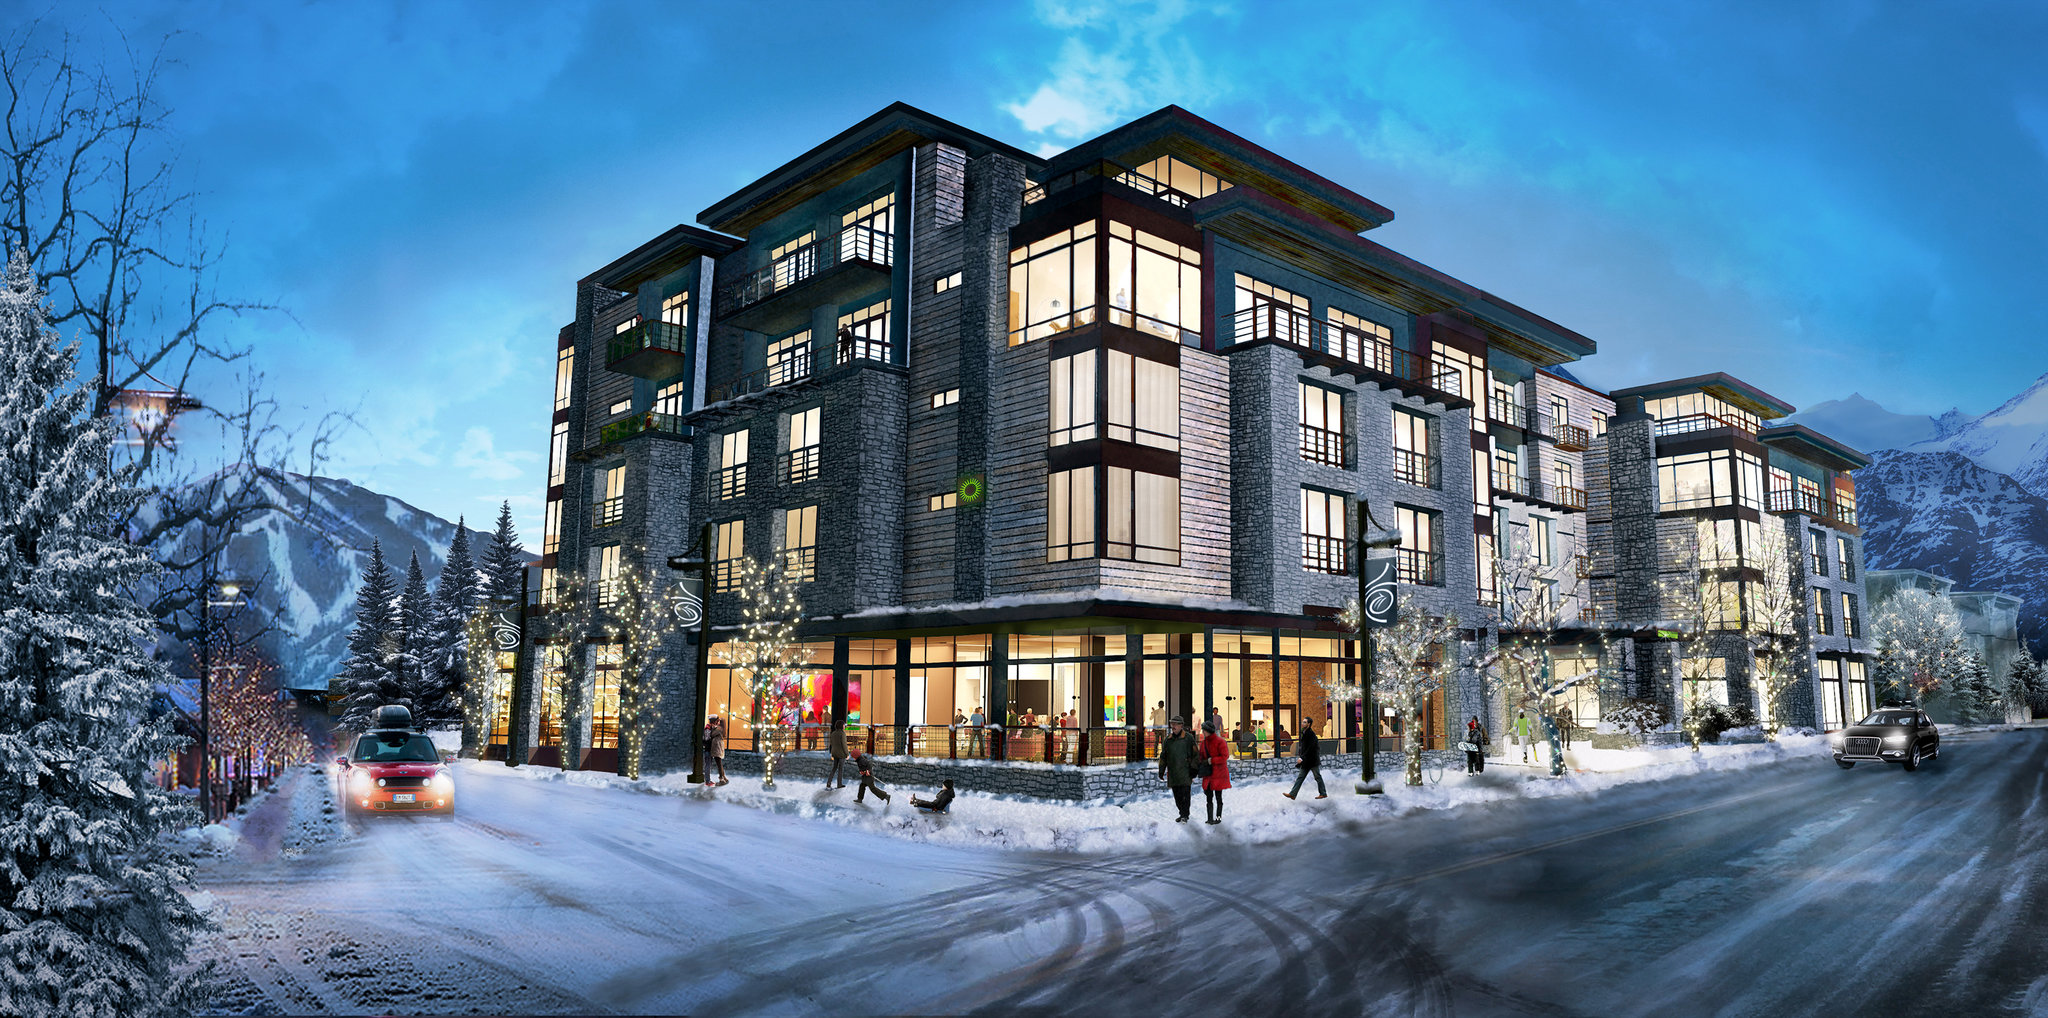 Overnight Options In Ski Country Will Expand Across The Range Beginning With New Limelight Hotel Ketchum Idaho Gateway To Sun Valley Resort